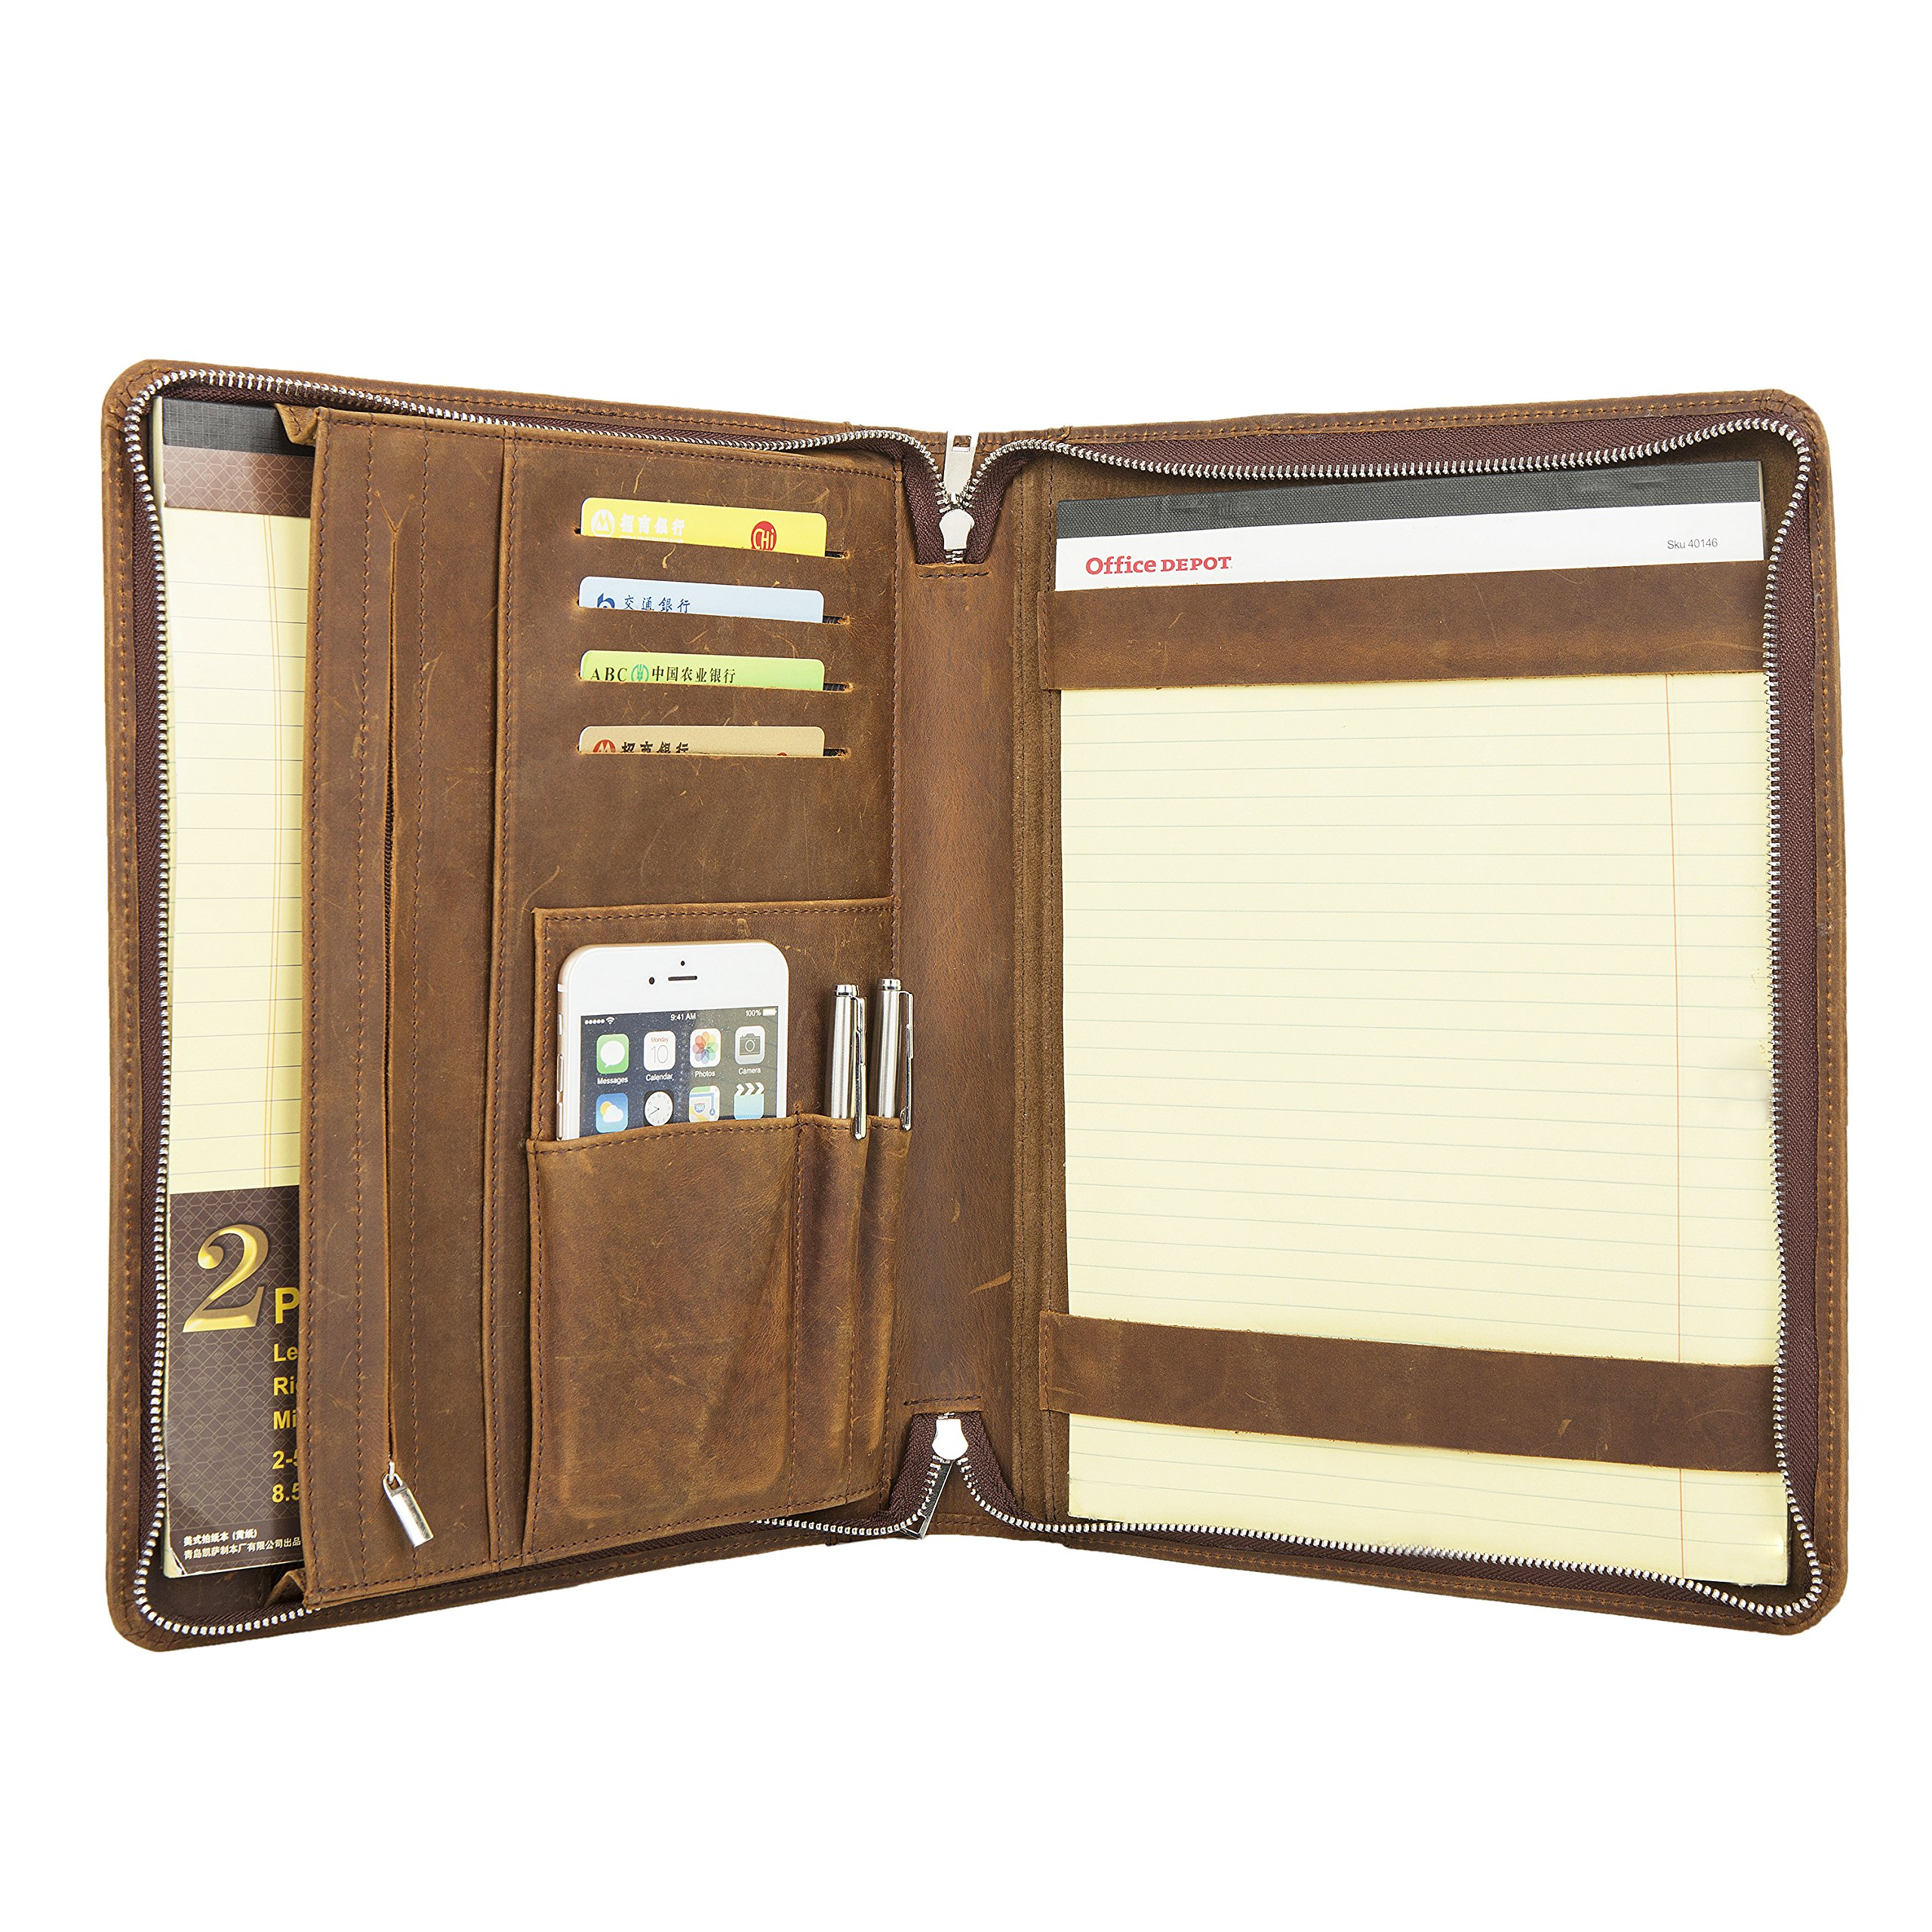 Coface Professional Padfolio Business Organizer Portfolio,Executive Binder, Document Holder, Case With Broadside Zipper,Engraved Custom Monogrammed,By Crazy-Horse Leather for iPad/surface book